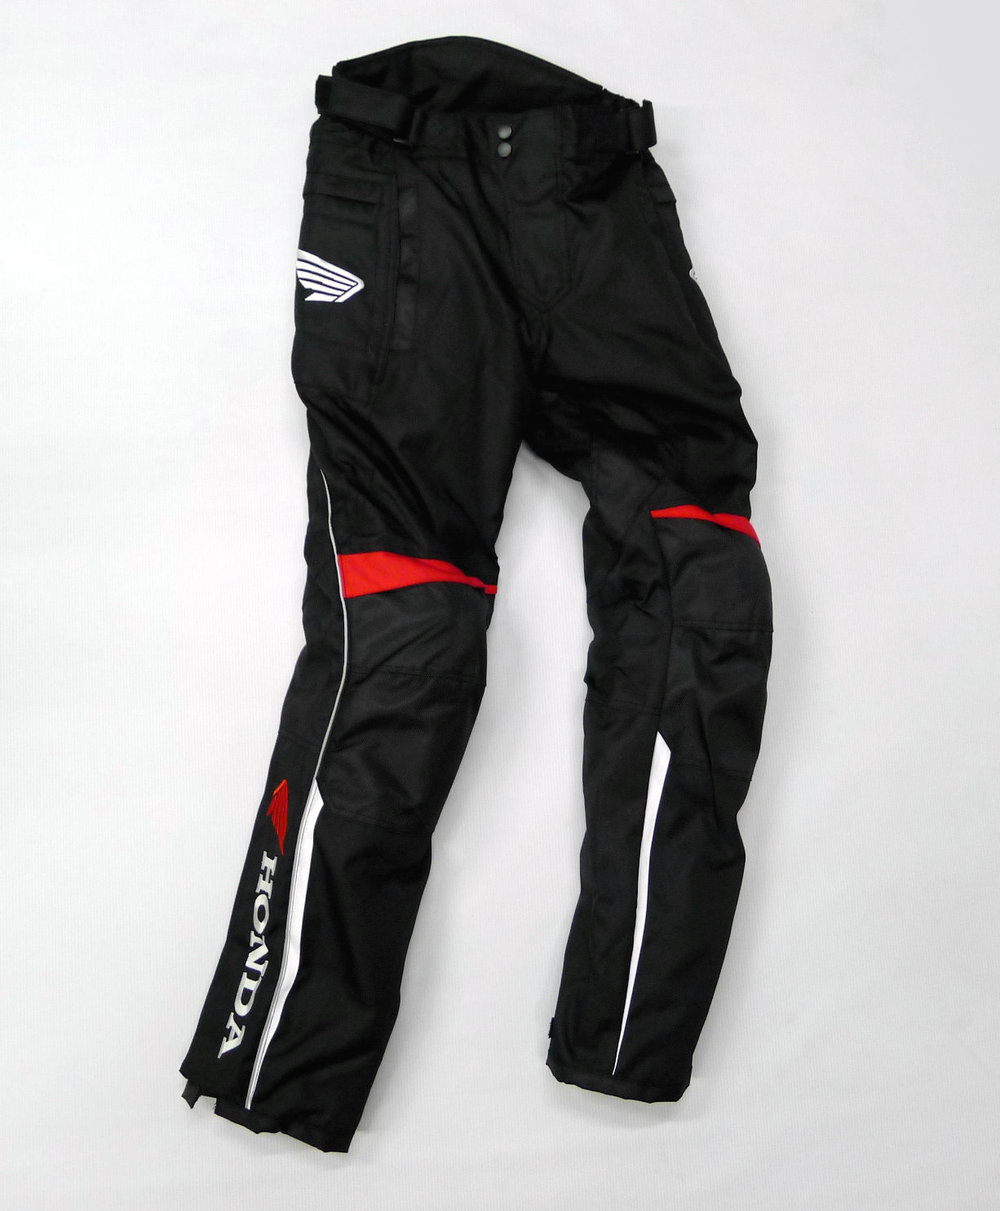 Free shipping 2017 hond cross country race Pants trousers pants protective motorcycle racing trousers pants fall